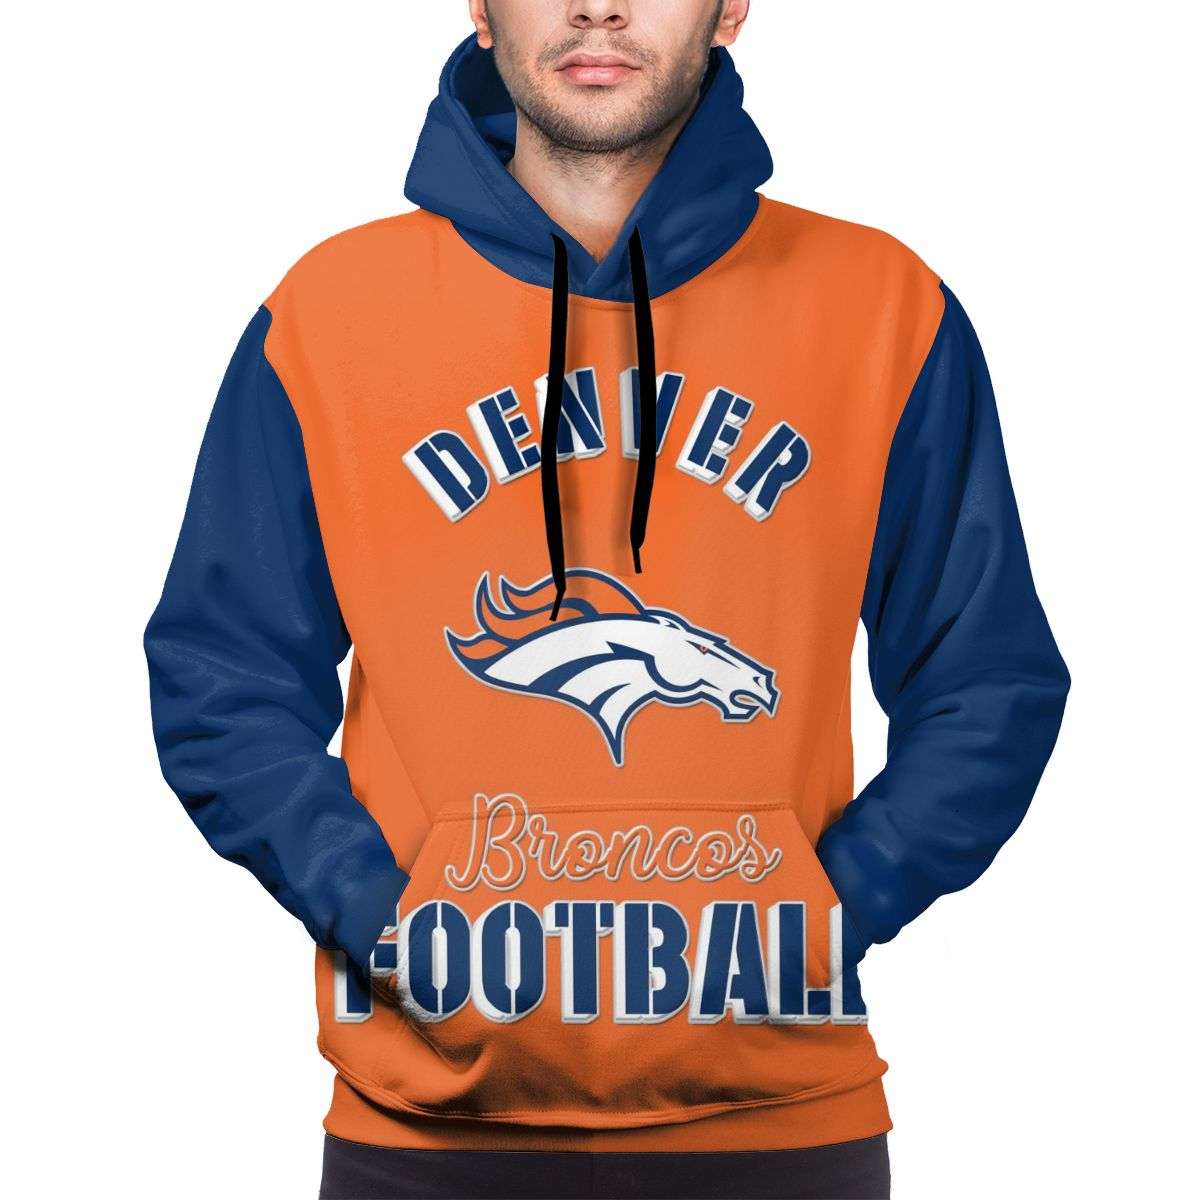 Broncos Football Team Customize Hoodies For Men Pullover Sweatshirt